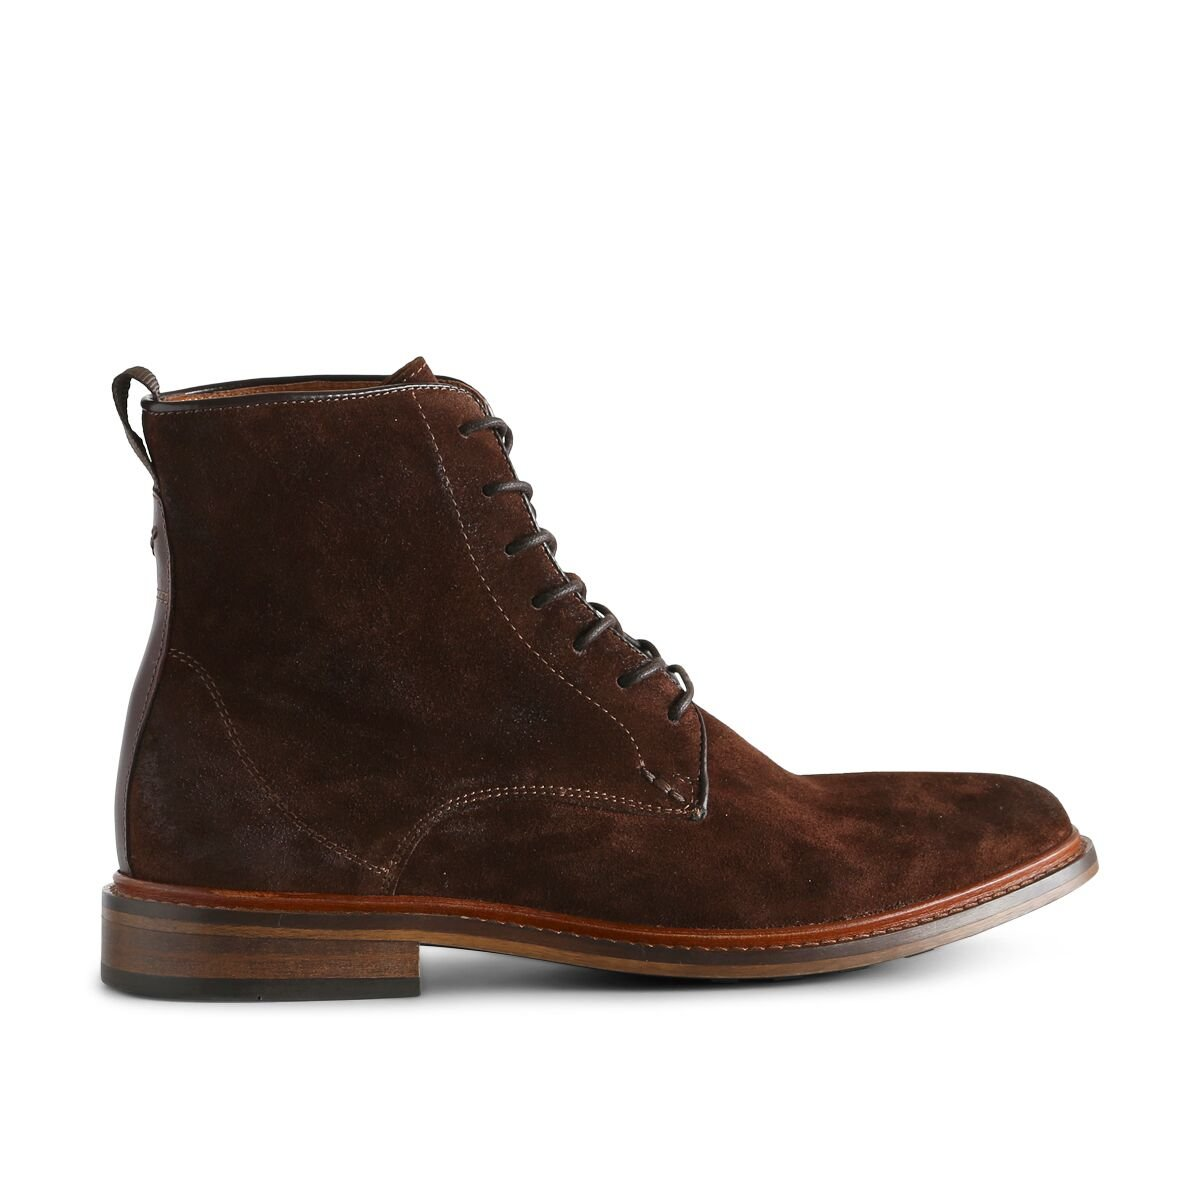 SHOE THE BEAR Ned S, Botas Clasicas para Hombre